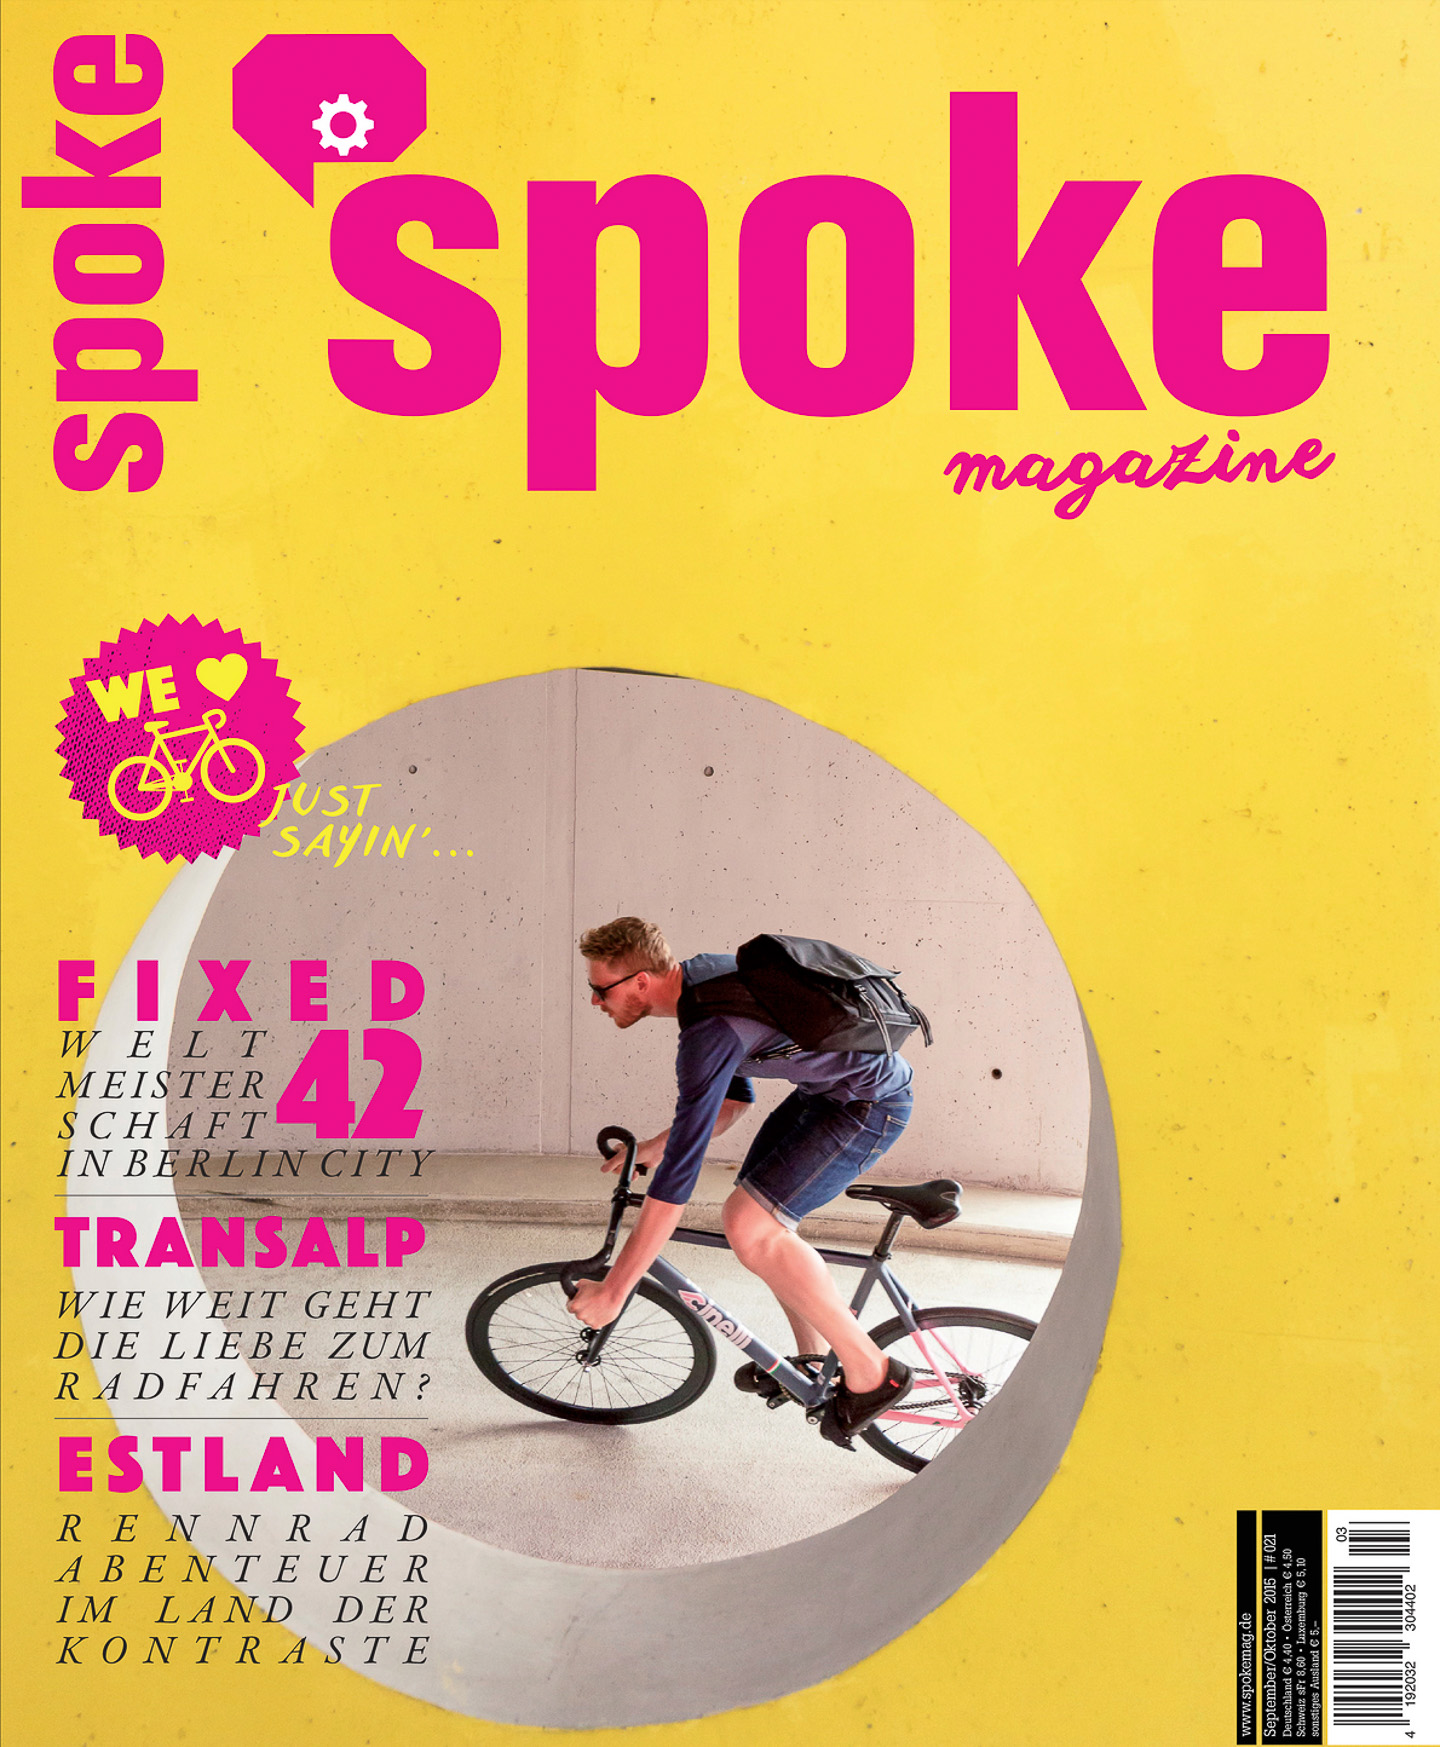 Spoke-magazine-cover-photo-1.jpg